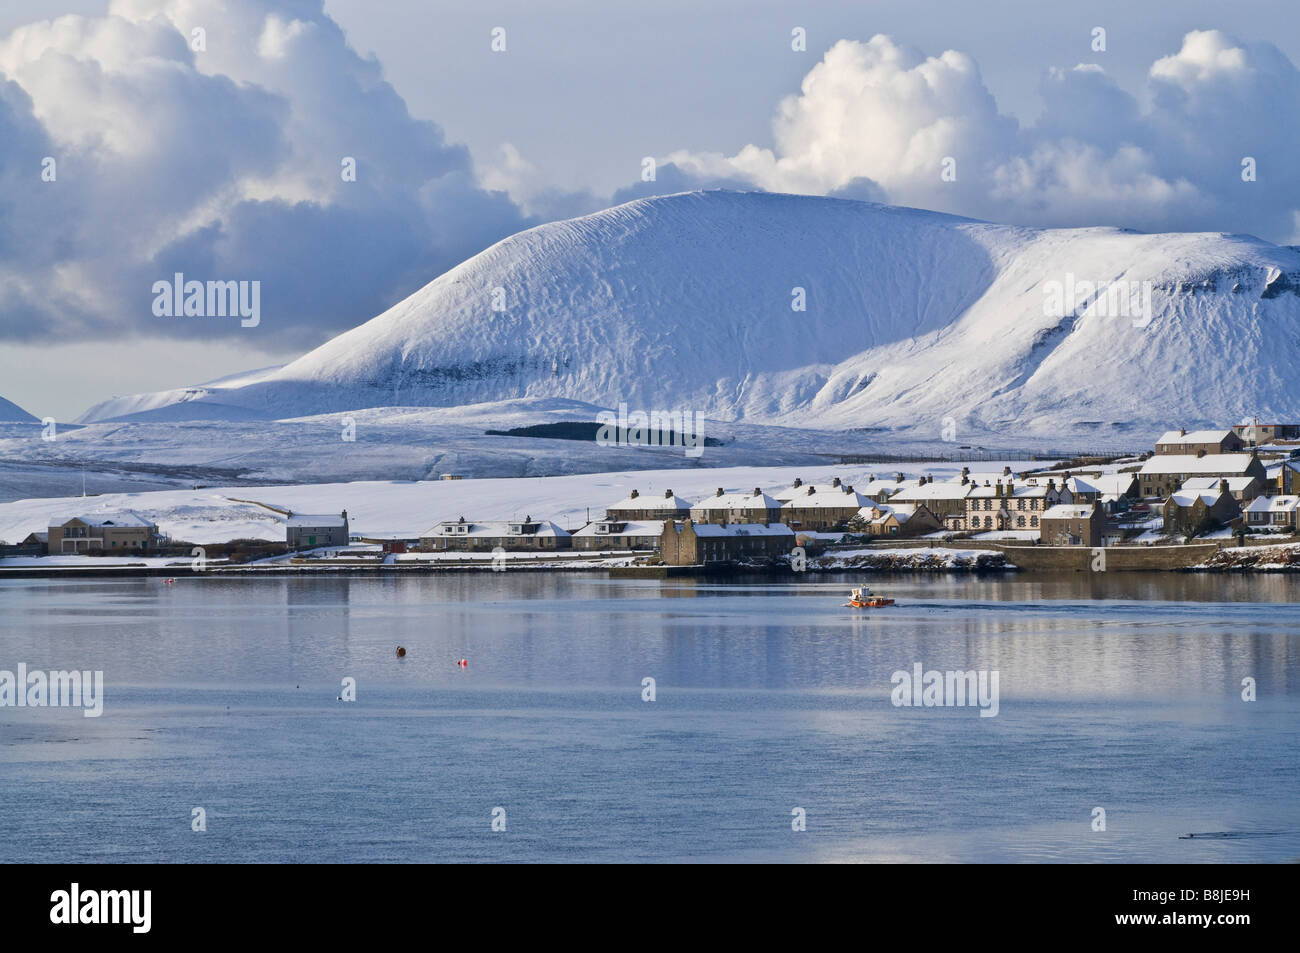 dh Harbour STROMNESS ORKNEY Fishingboat leaving harbour winter snow white hills landscape scenery Stock Photo